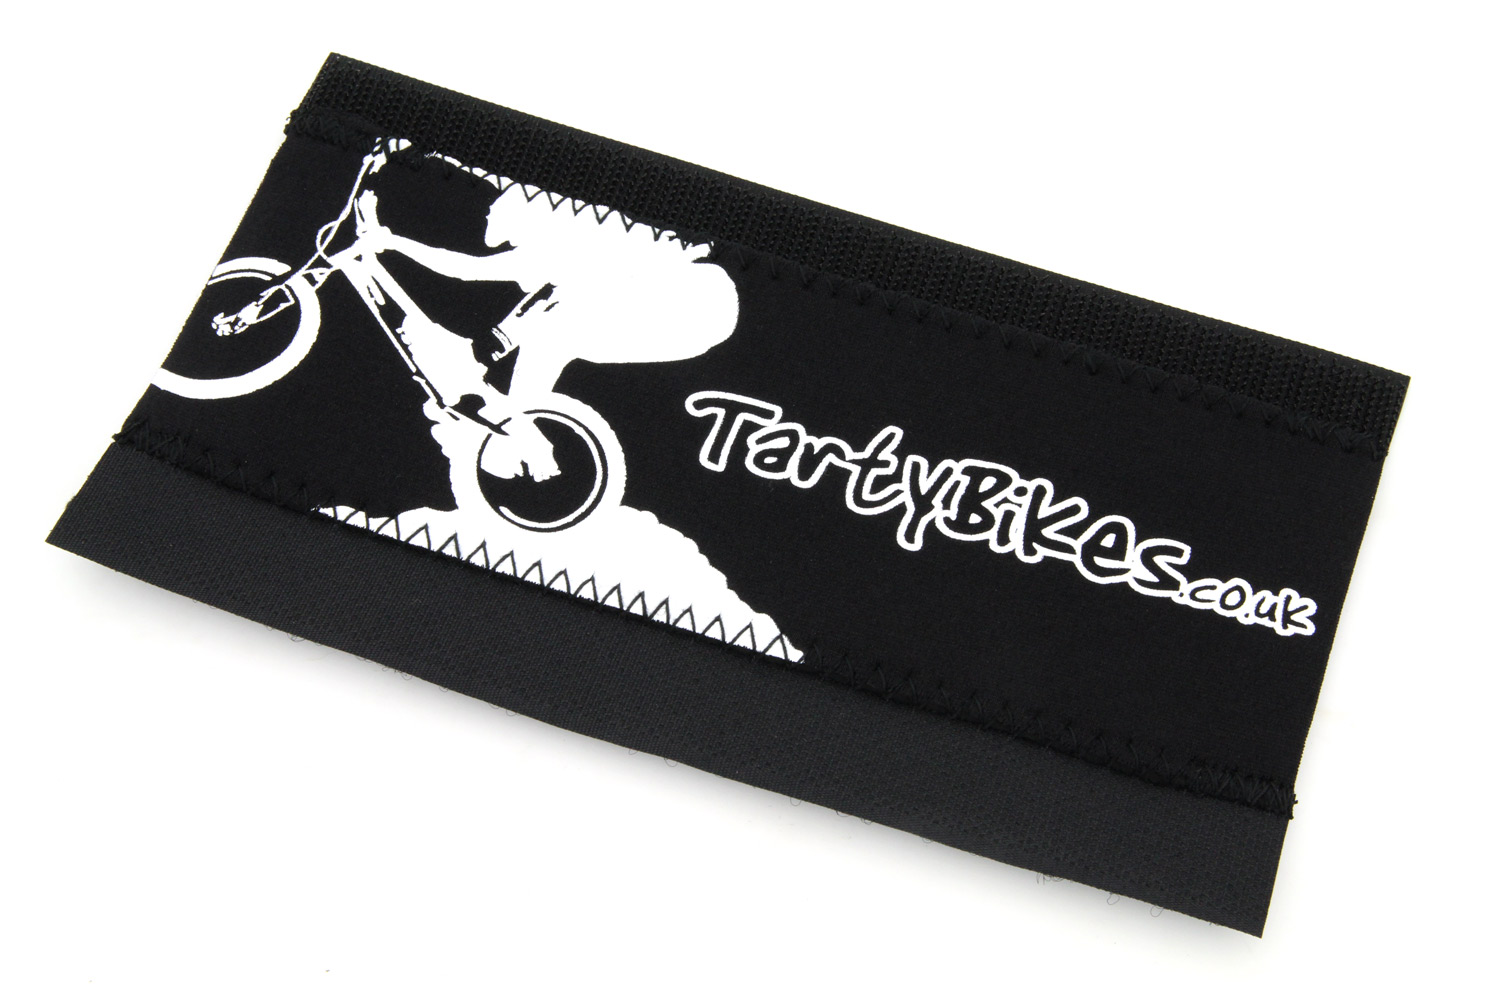 TartyBikes V3 Chainstay Protector